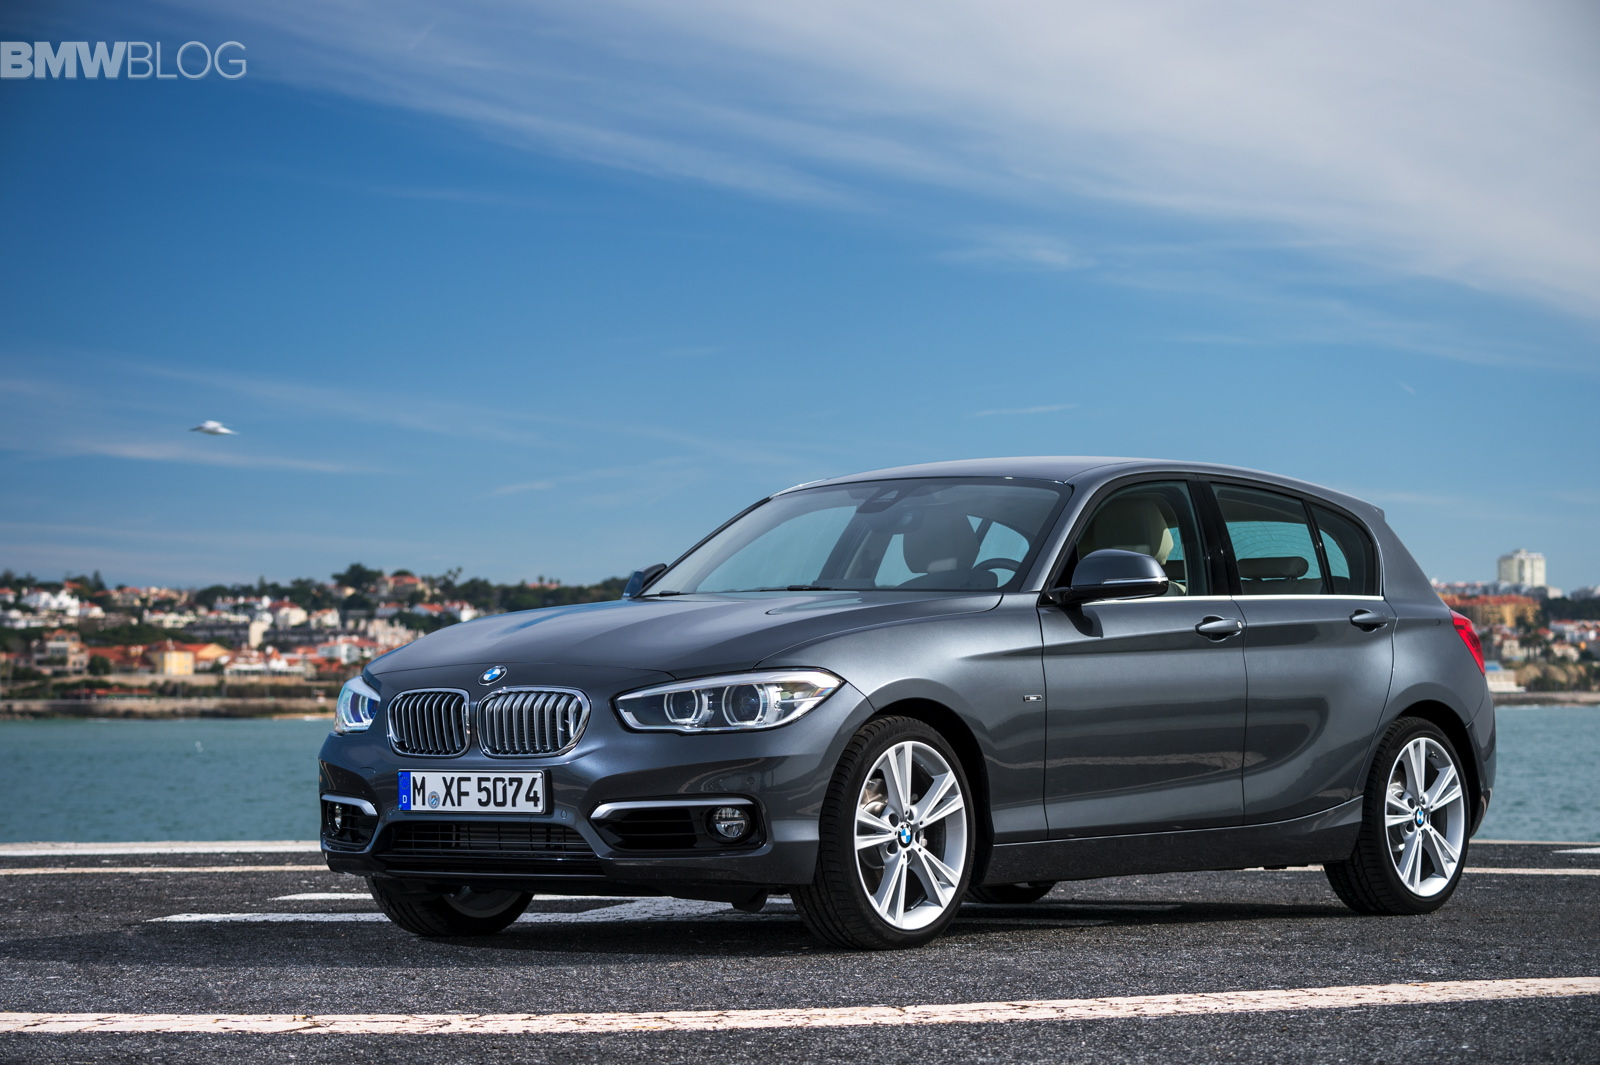 2015 bmw 1 series photos 16